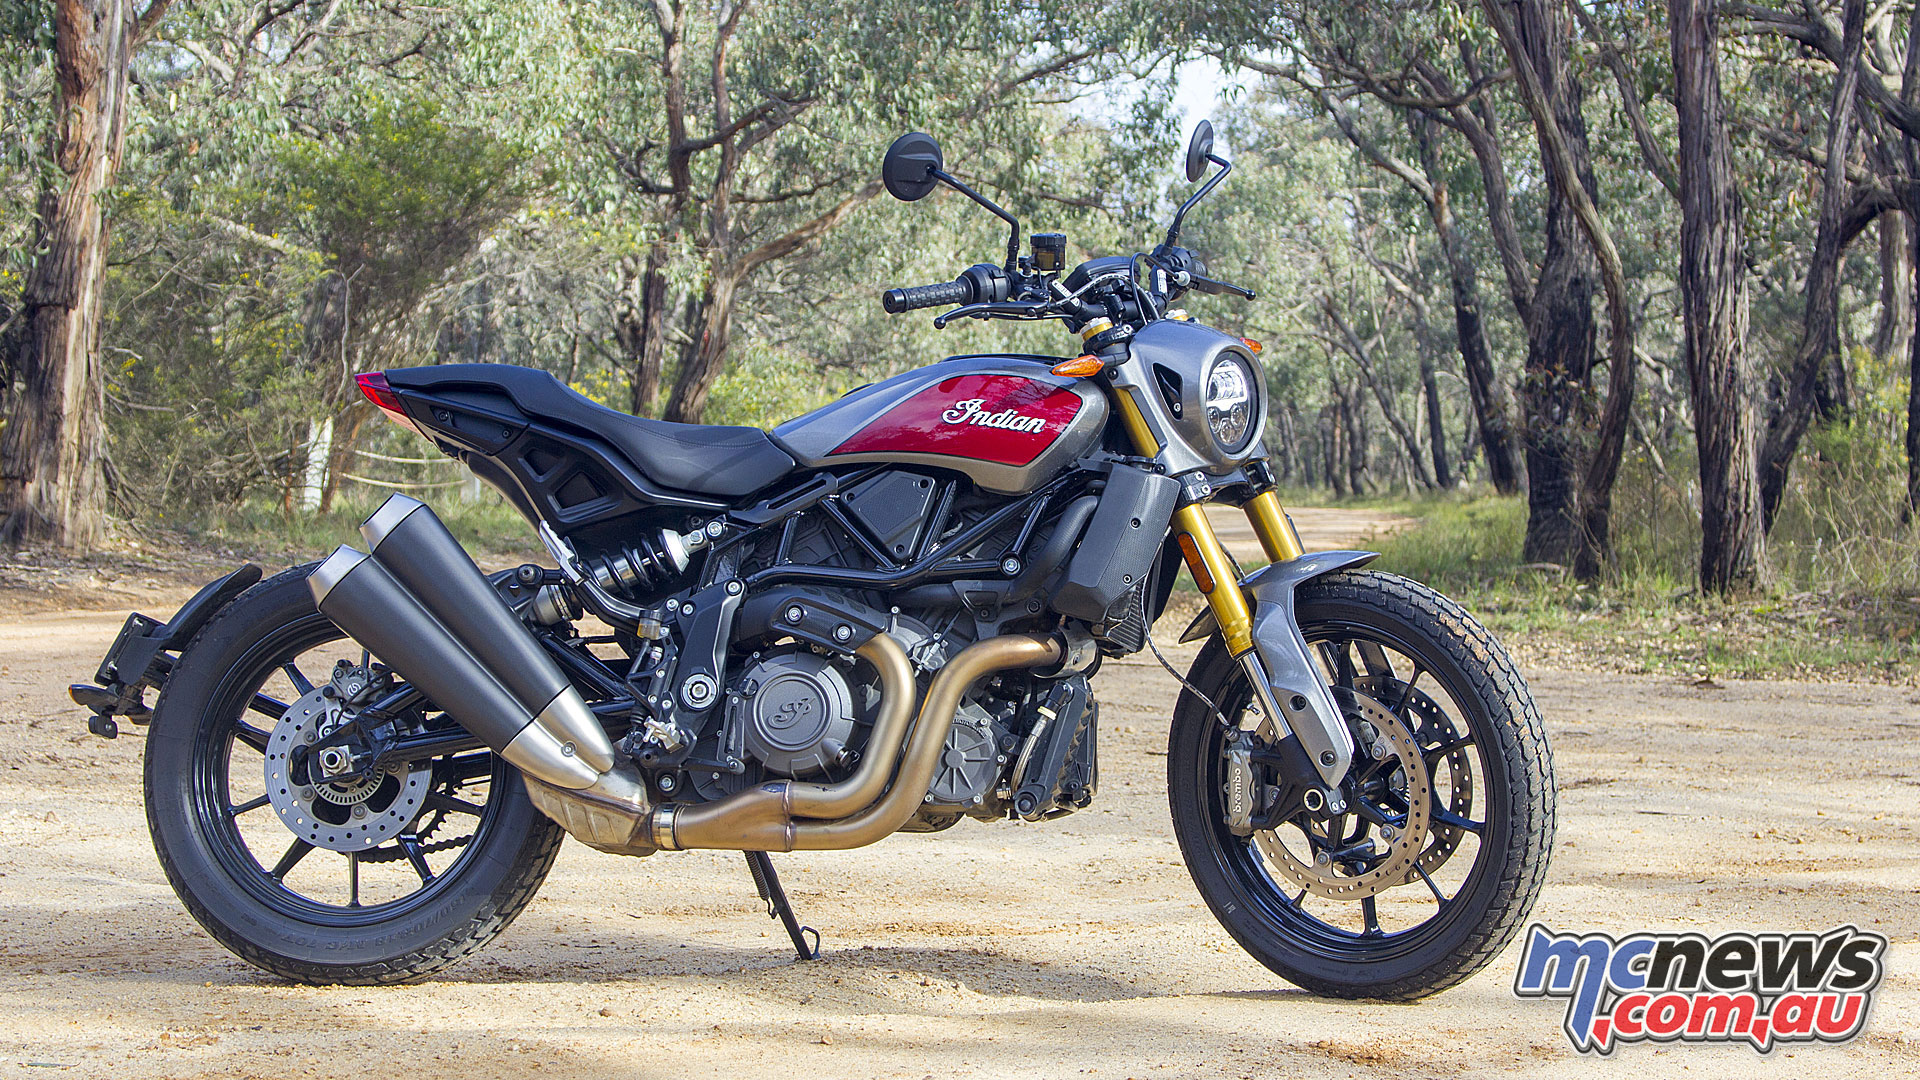 2019 Indian Ftr 1200 S Motorcycle Review Mcnews Com Au